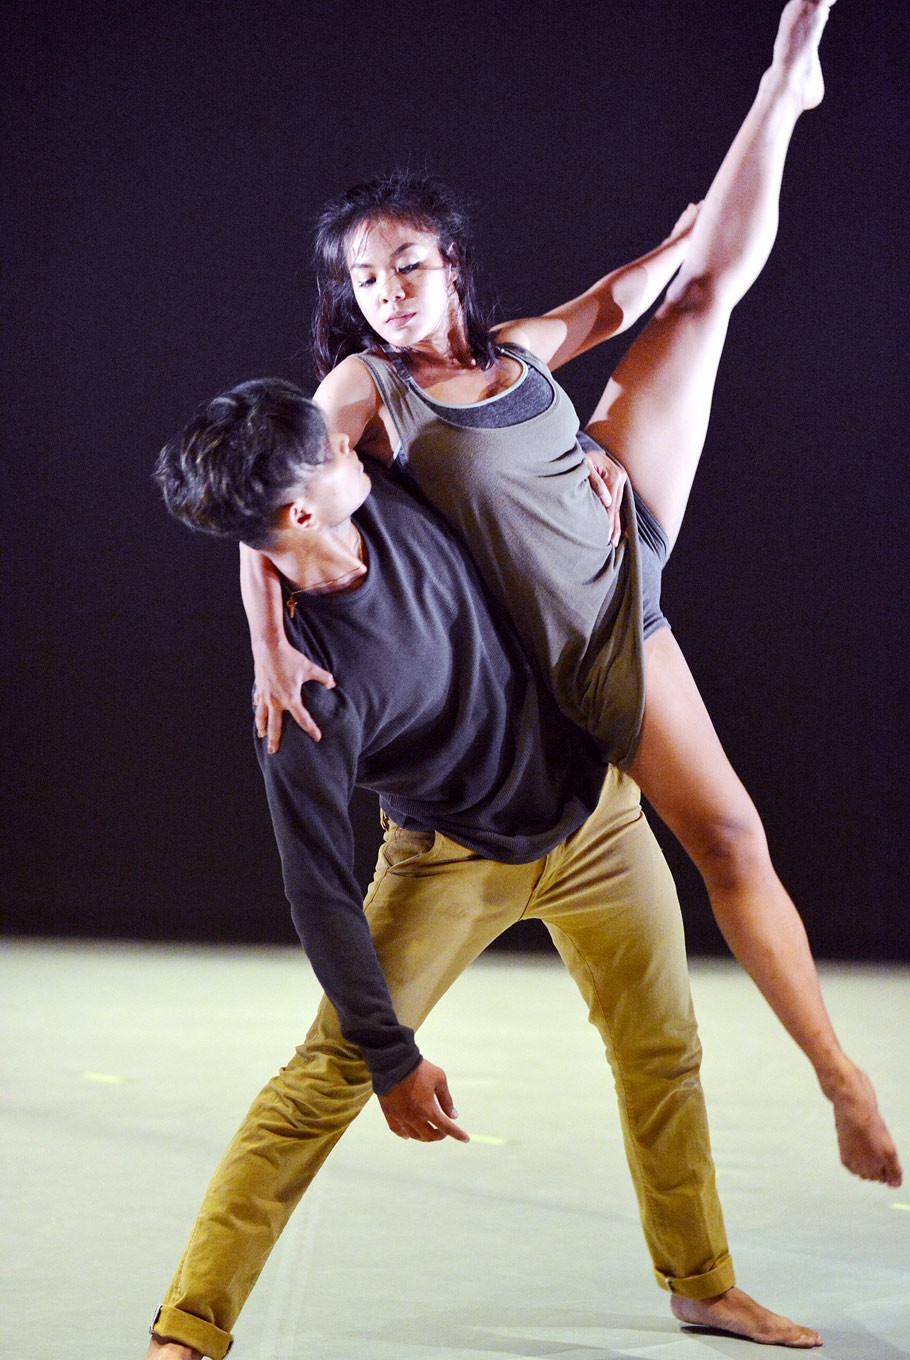 A touch of ballet: Two dancers perform together on stage.